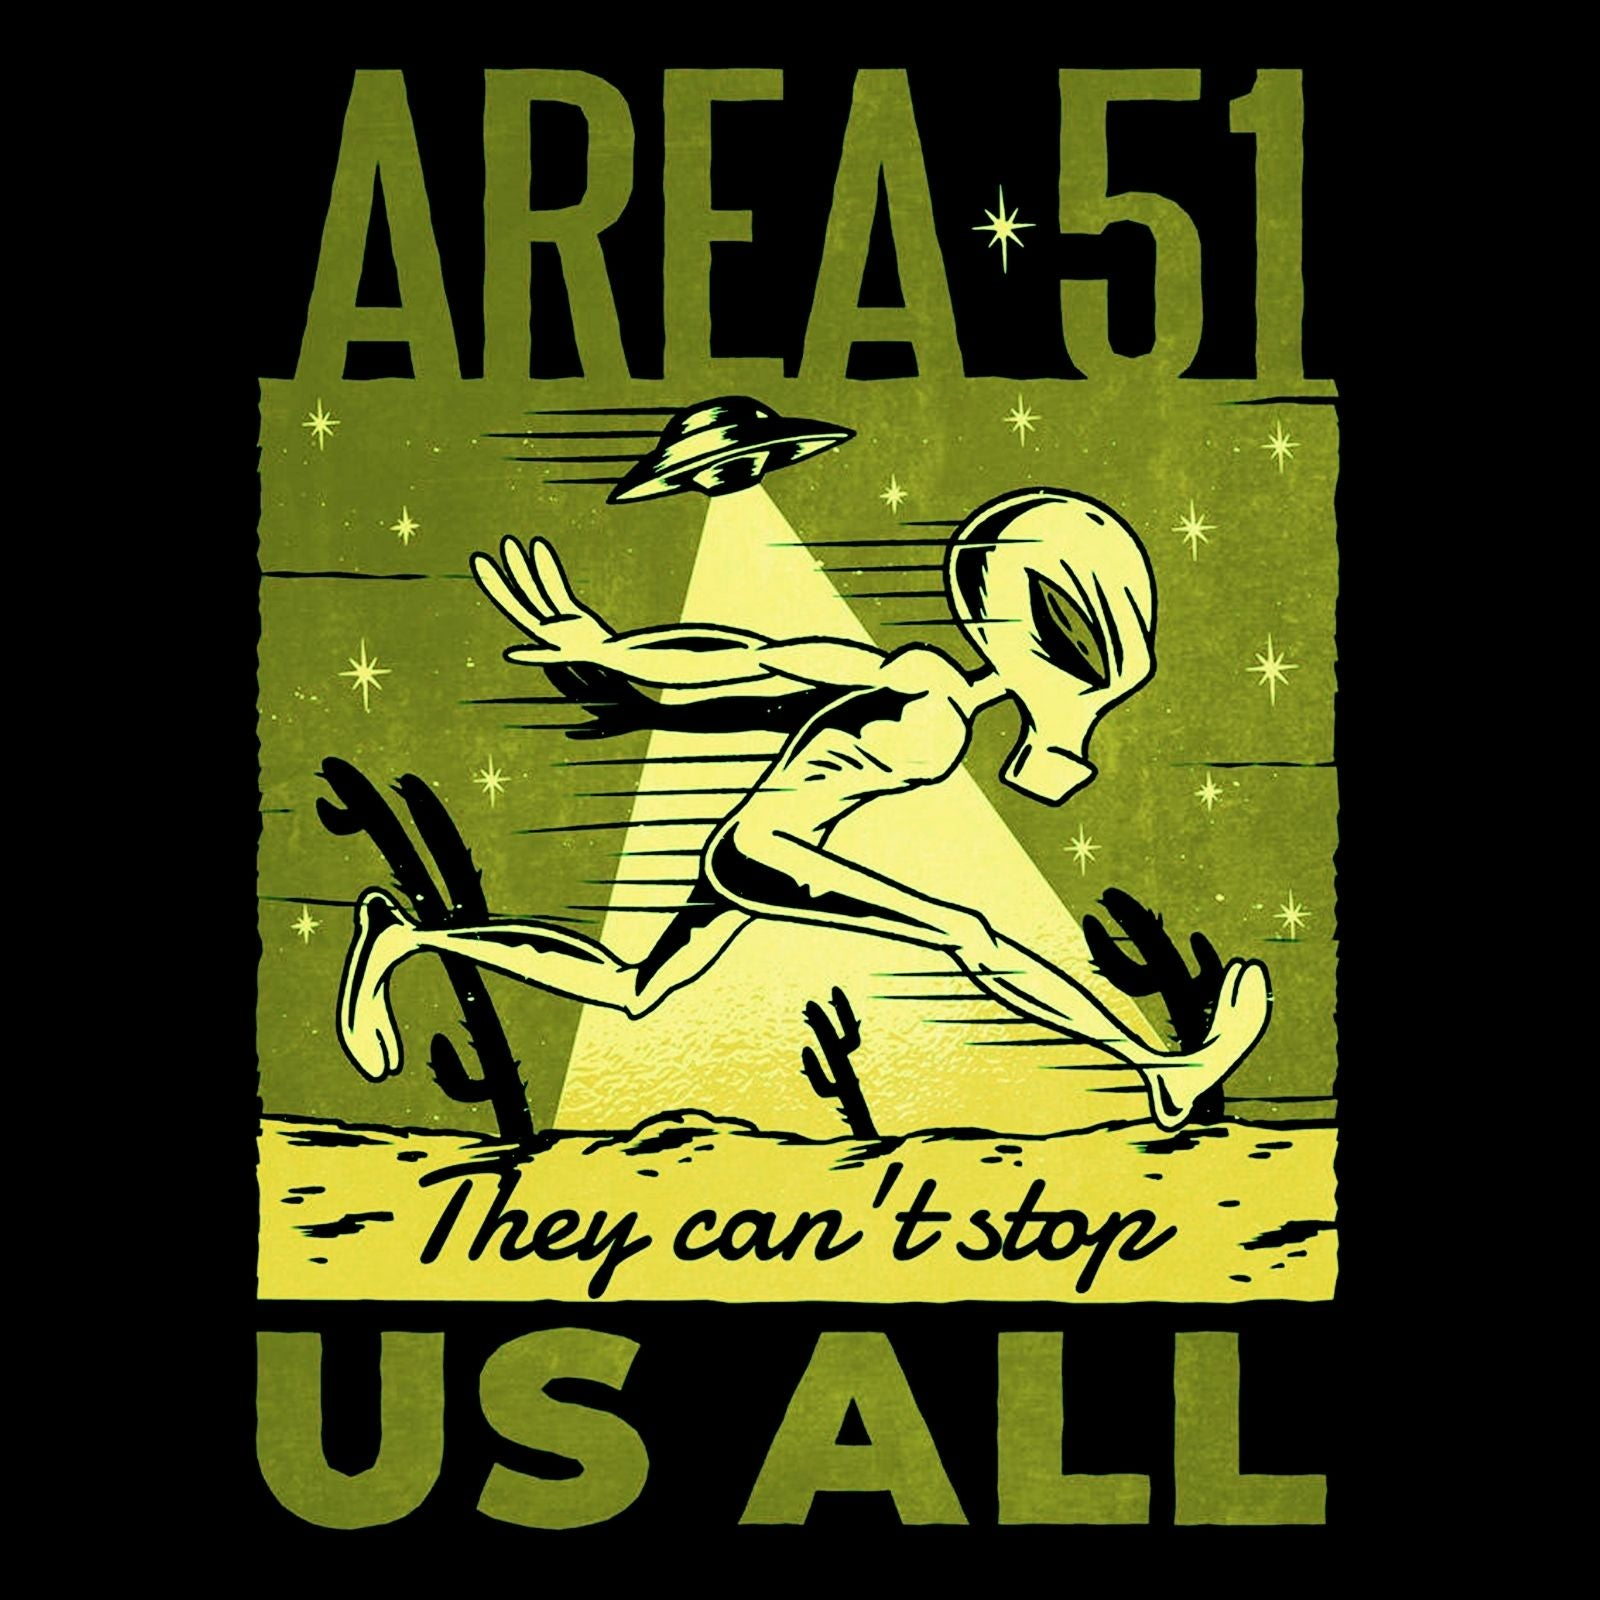 Area 51 They Can't Stop Us All - Bastard Graphics